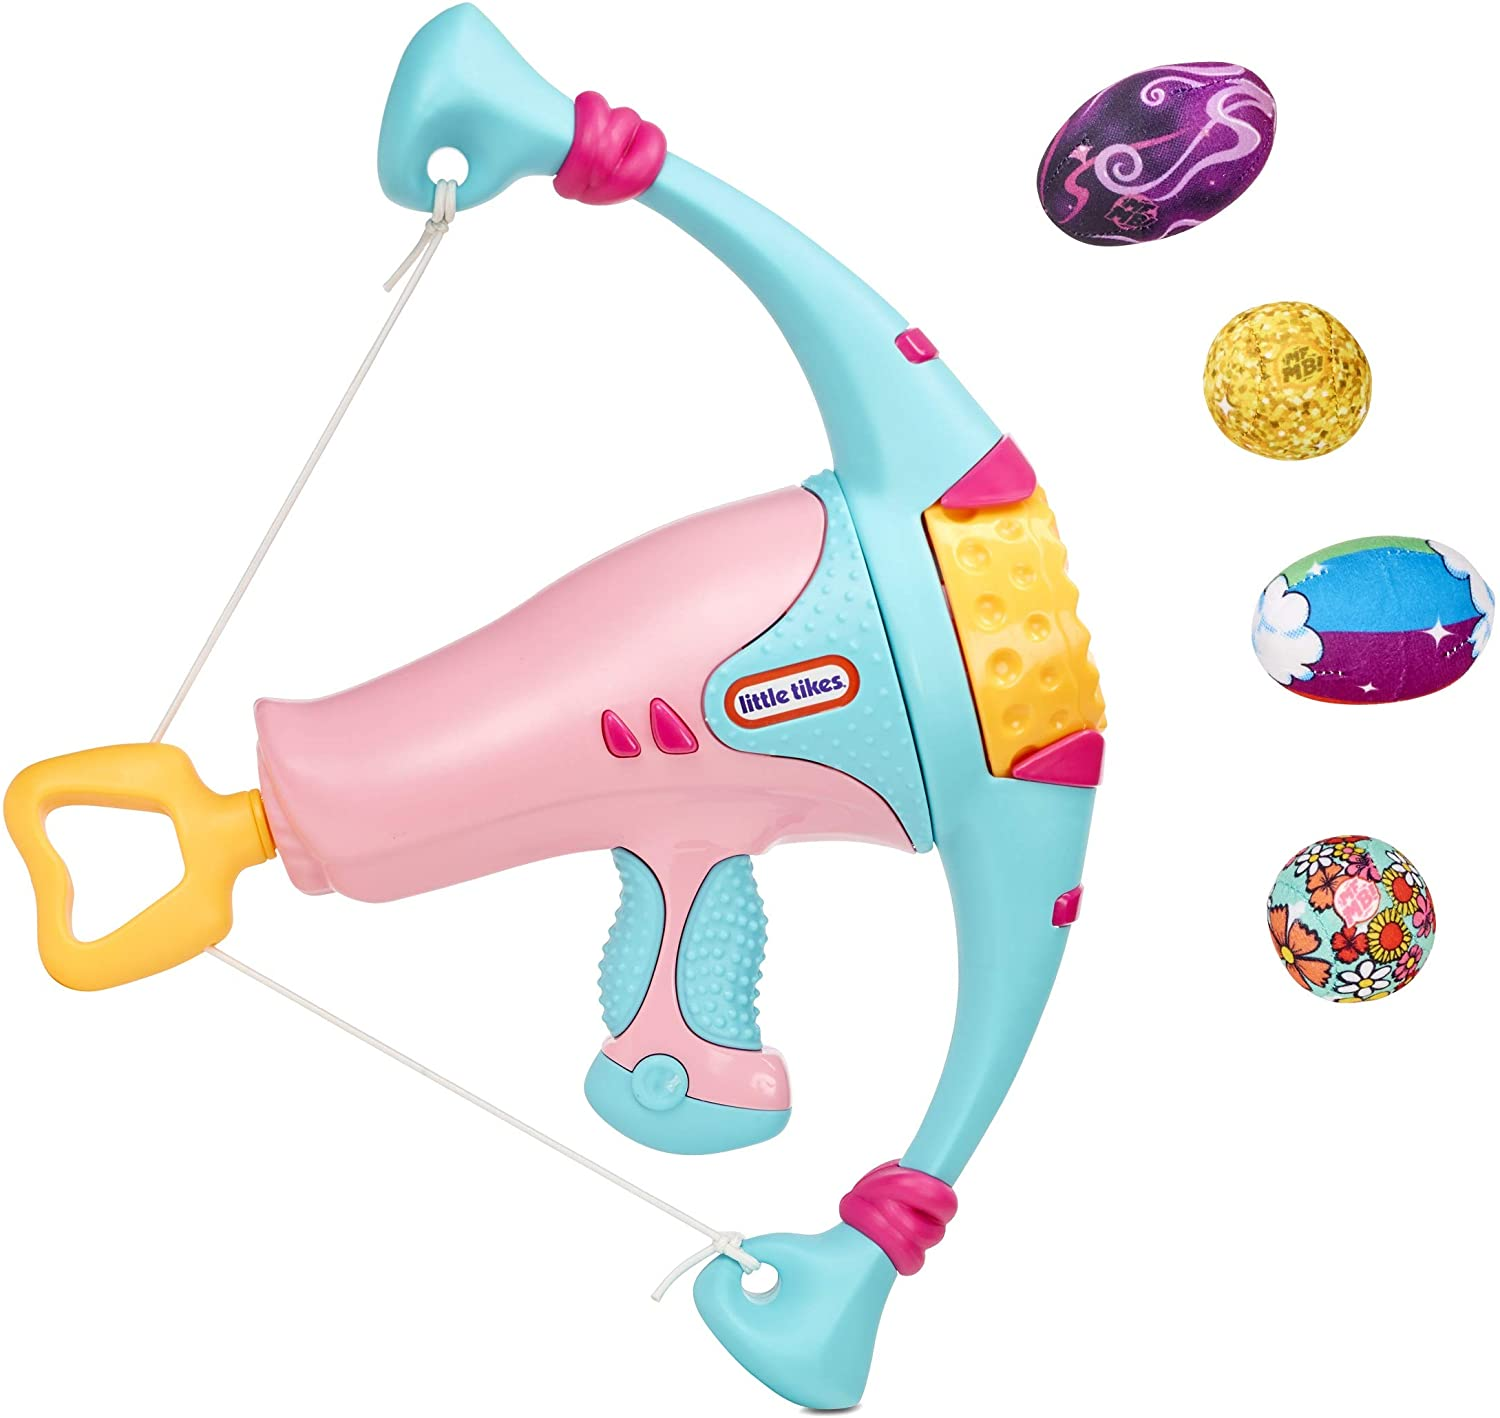 Little Tikes Mighty Blasters Power Bow Pink Toy Blaster with 4 Soft Power Pods for Kids Ages 3 Years and Up